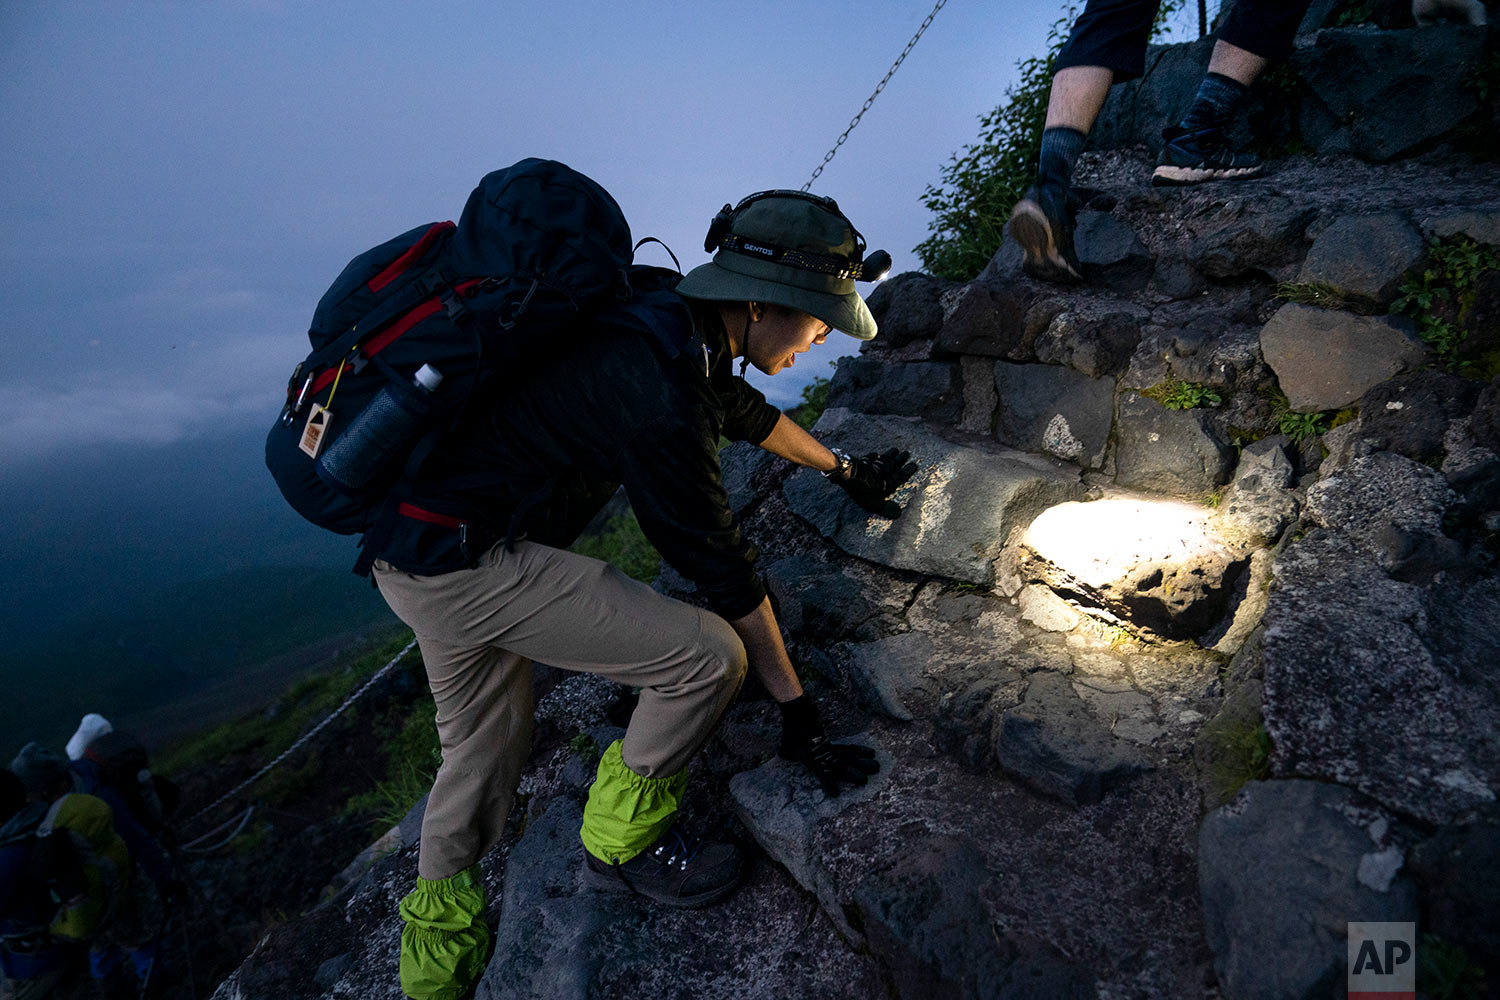 A man with a headlamp climbs to the summit of Mount Fuji, Aug. 2, 2019, in Japan. (AP Photo/Jae C. Hong)